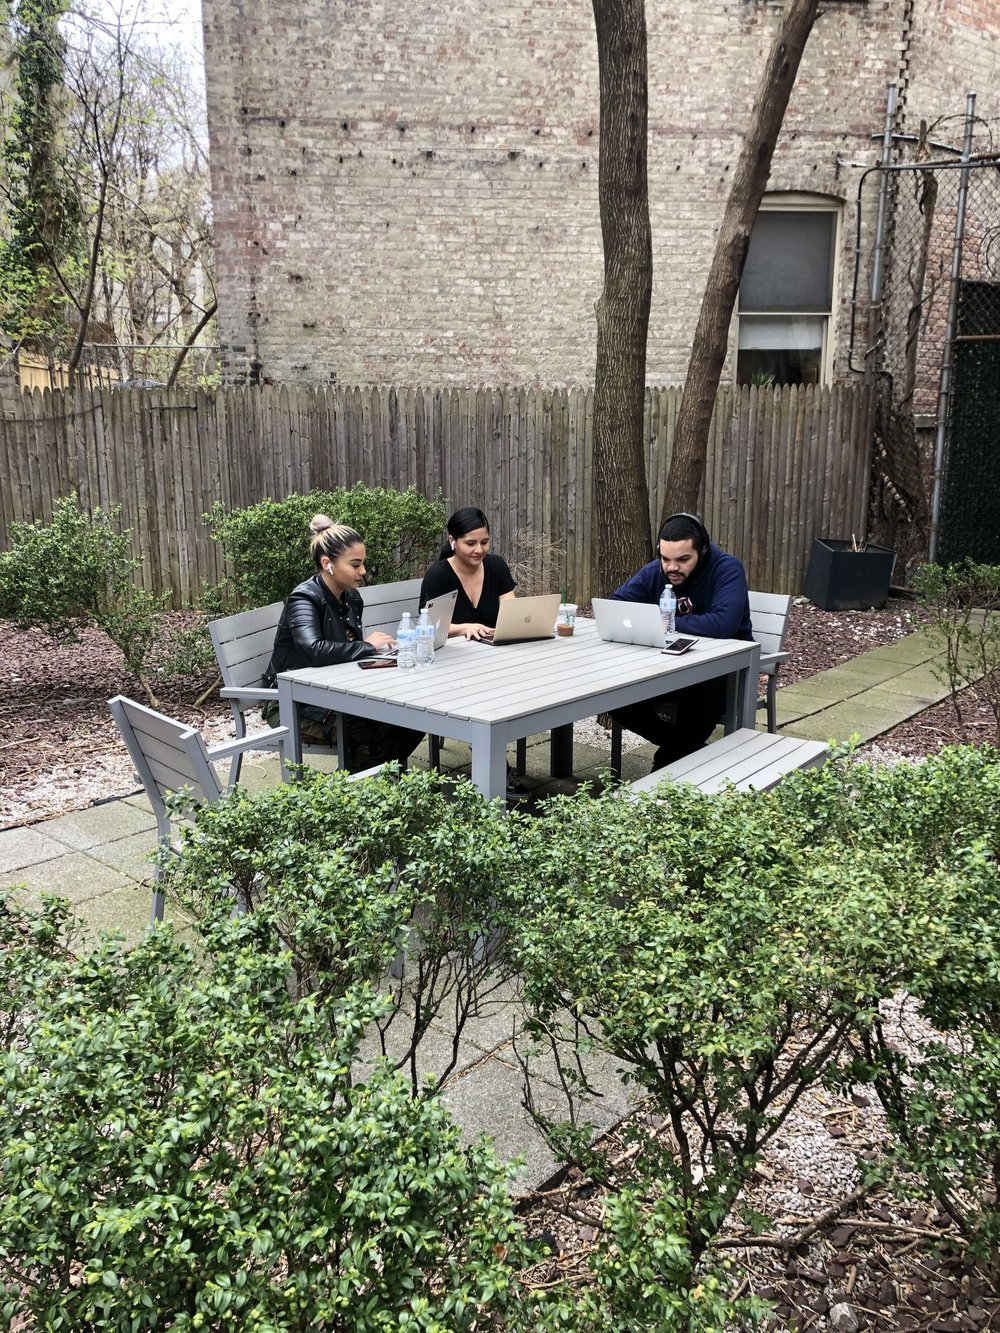 Work + Good Weather - As the weather continues to improve, enjoy our large garden and its wifi. Buy a Day Pass and come on by to be productive outdoors!